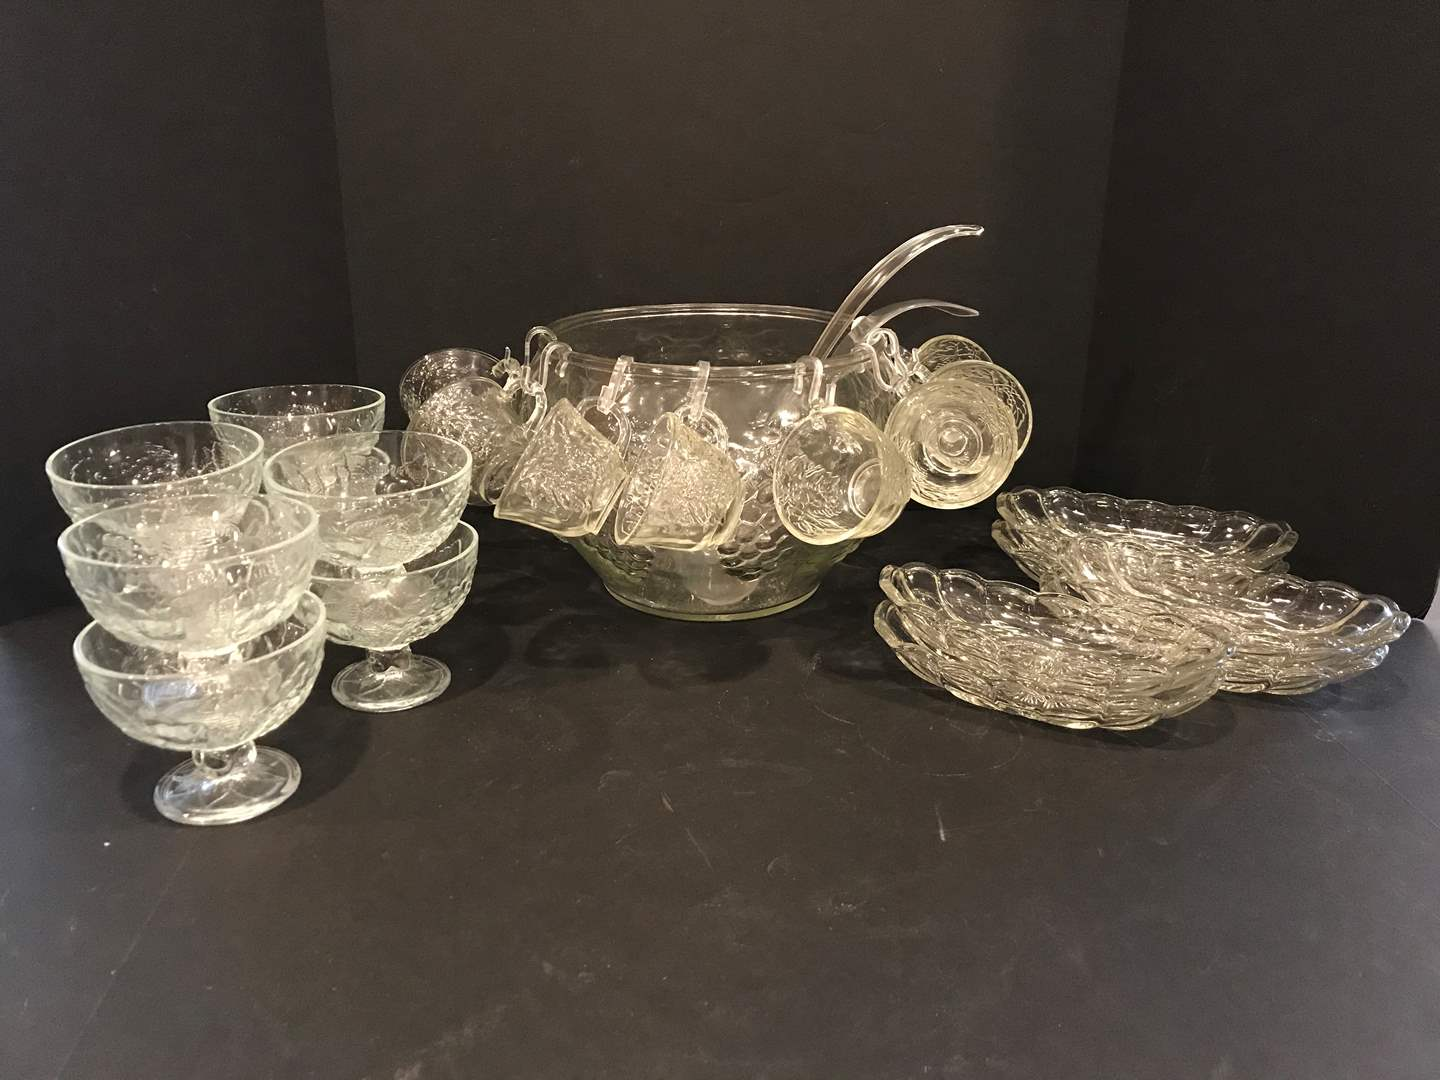 Lot # 54 - Large Glass Punch Bowl & Glass Serving Dishes (main image)